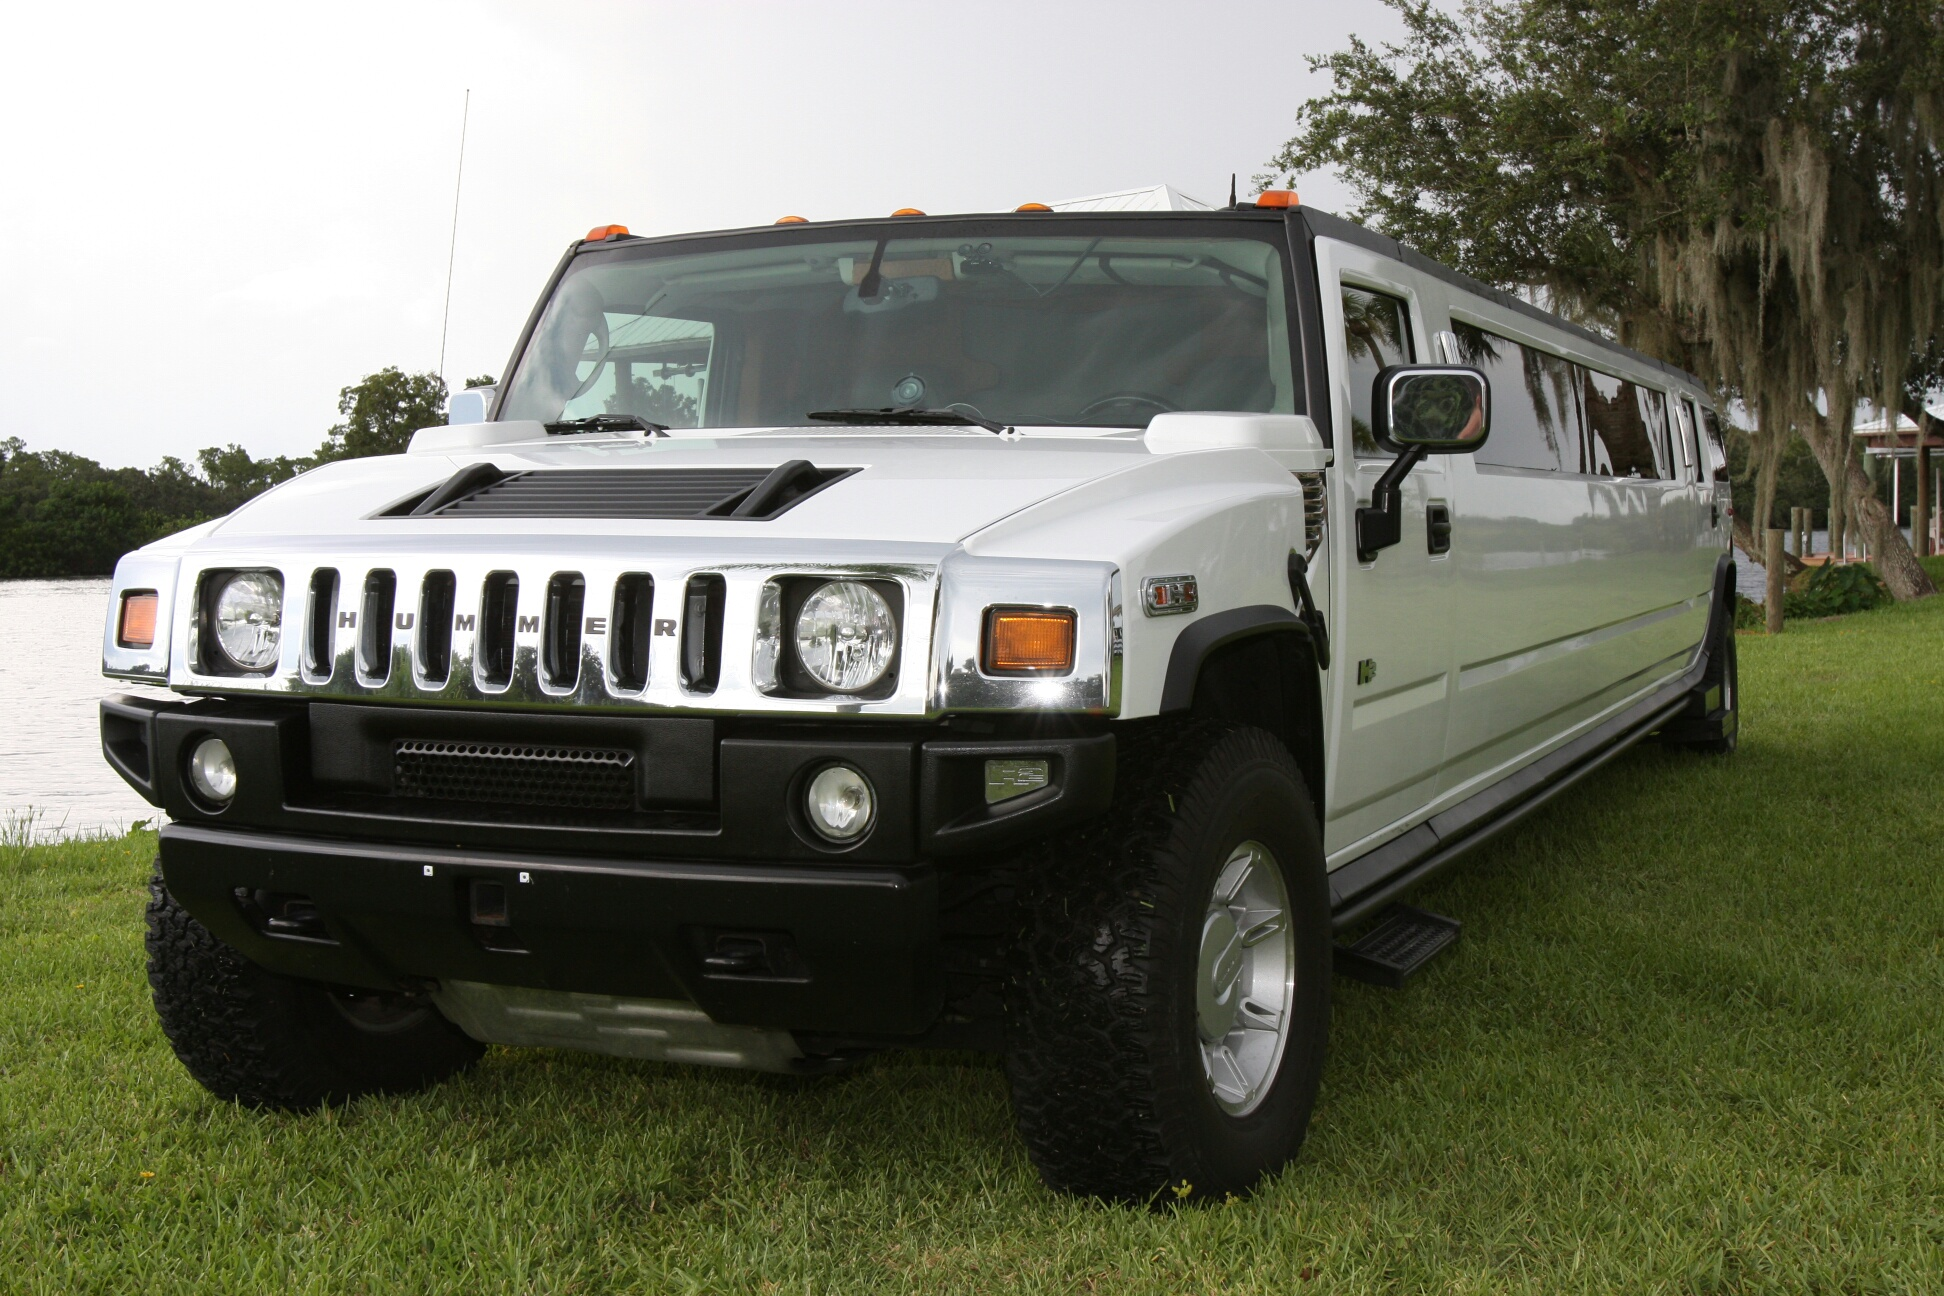 Winter Park White Hummer Limo